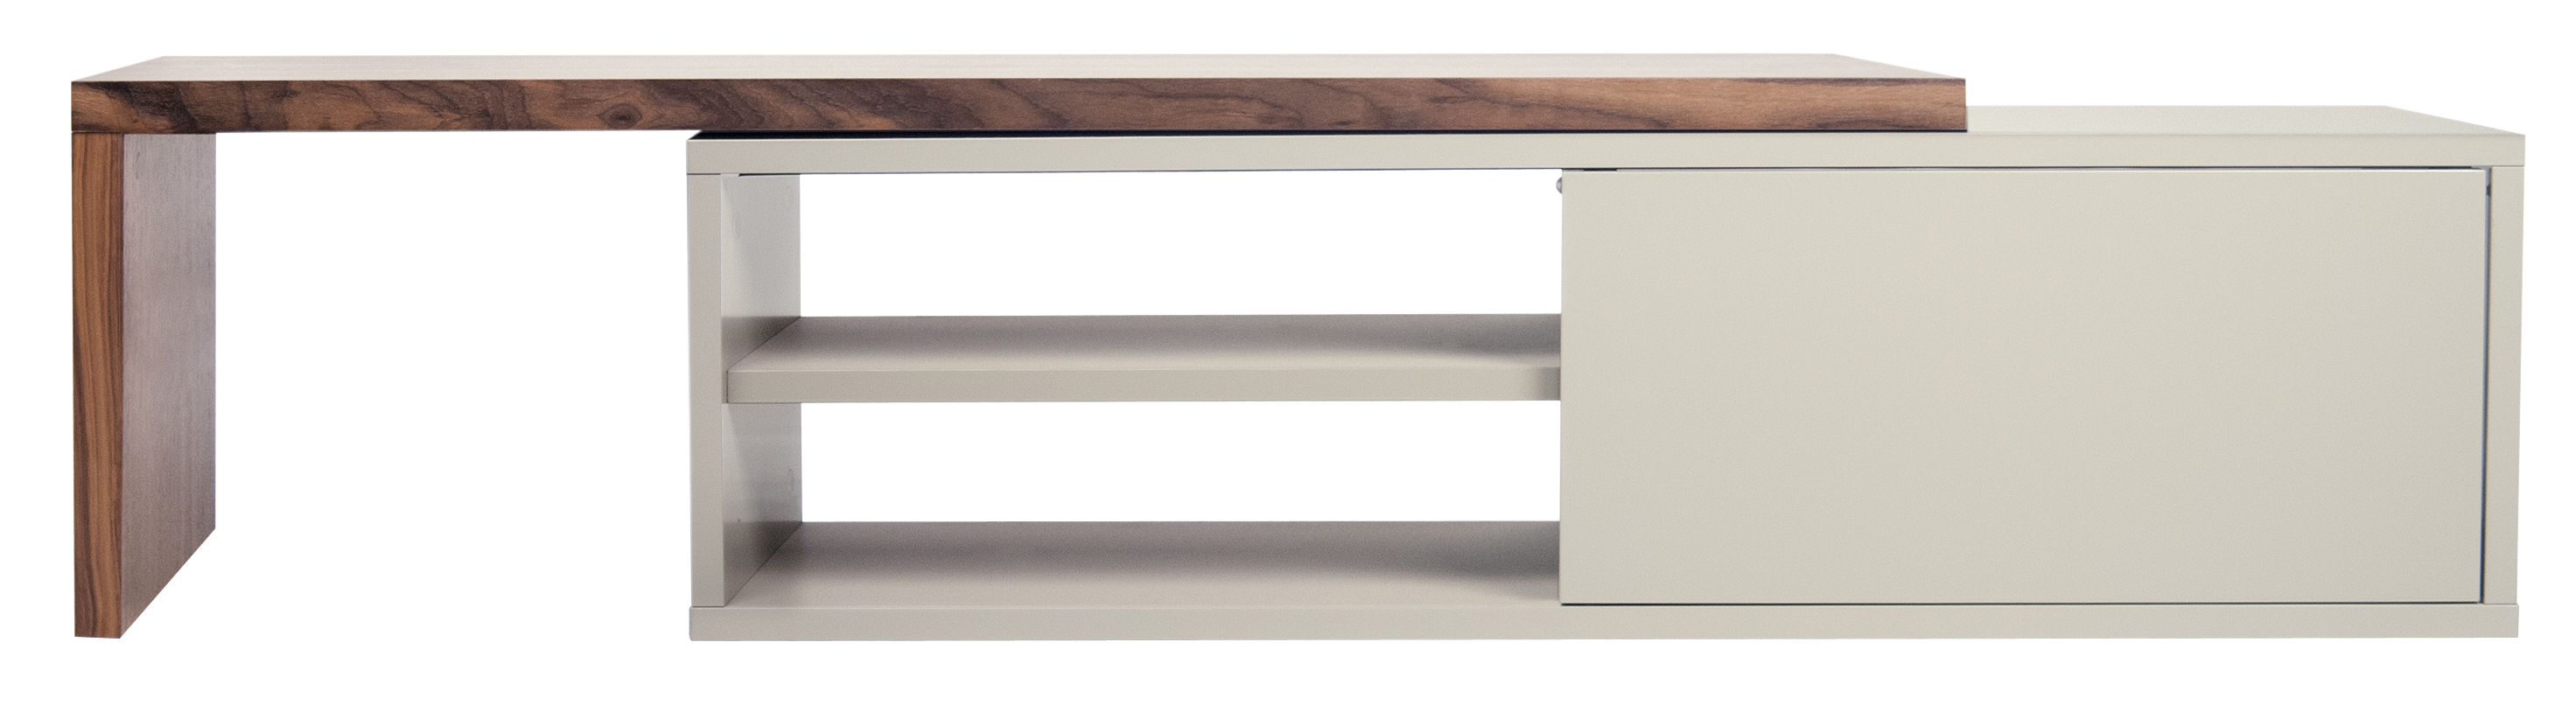 Furniture - TV Stands - Slide Extensible TV cabinet - / Swivel - L 110 to 203 cm by POP UP HOME - Grey / Walnut - Painted honeycomb panels, Walnut veneer